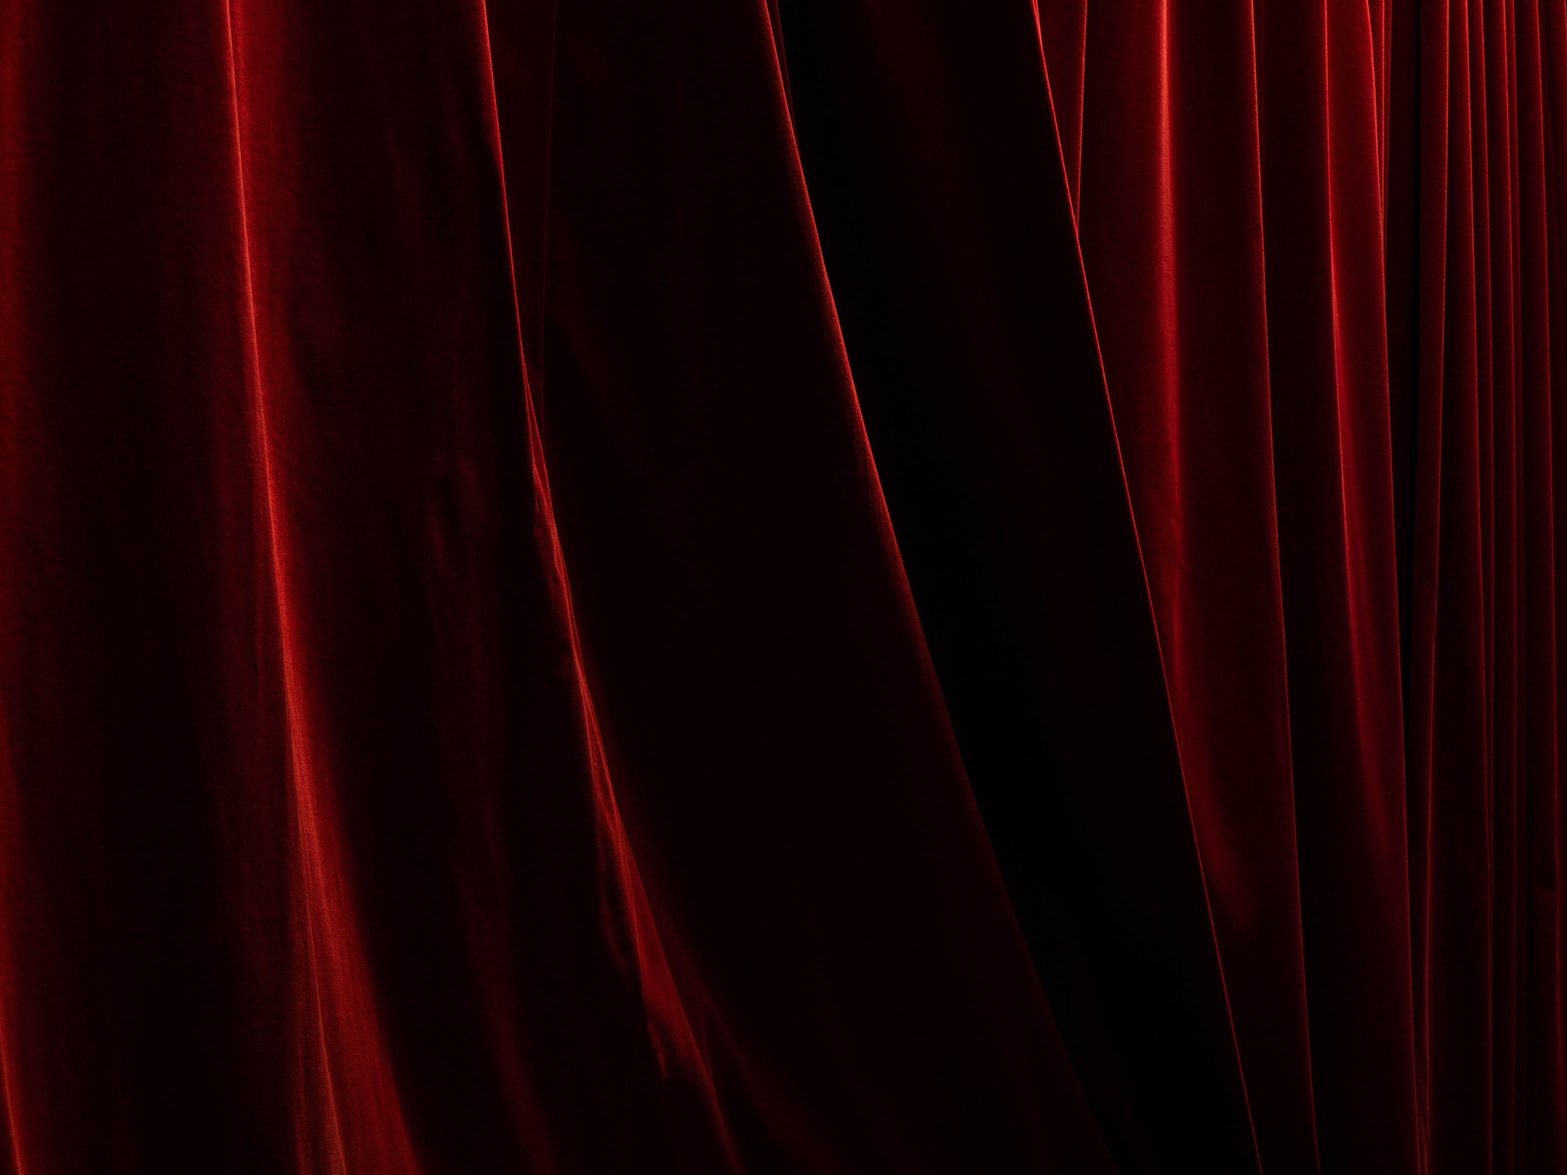 red curtain used for diy projector screen